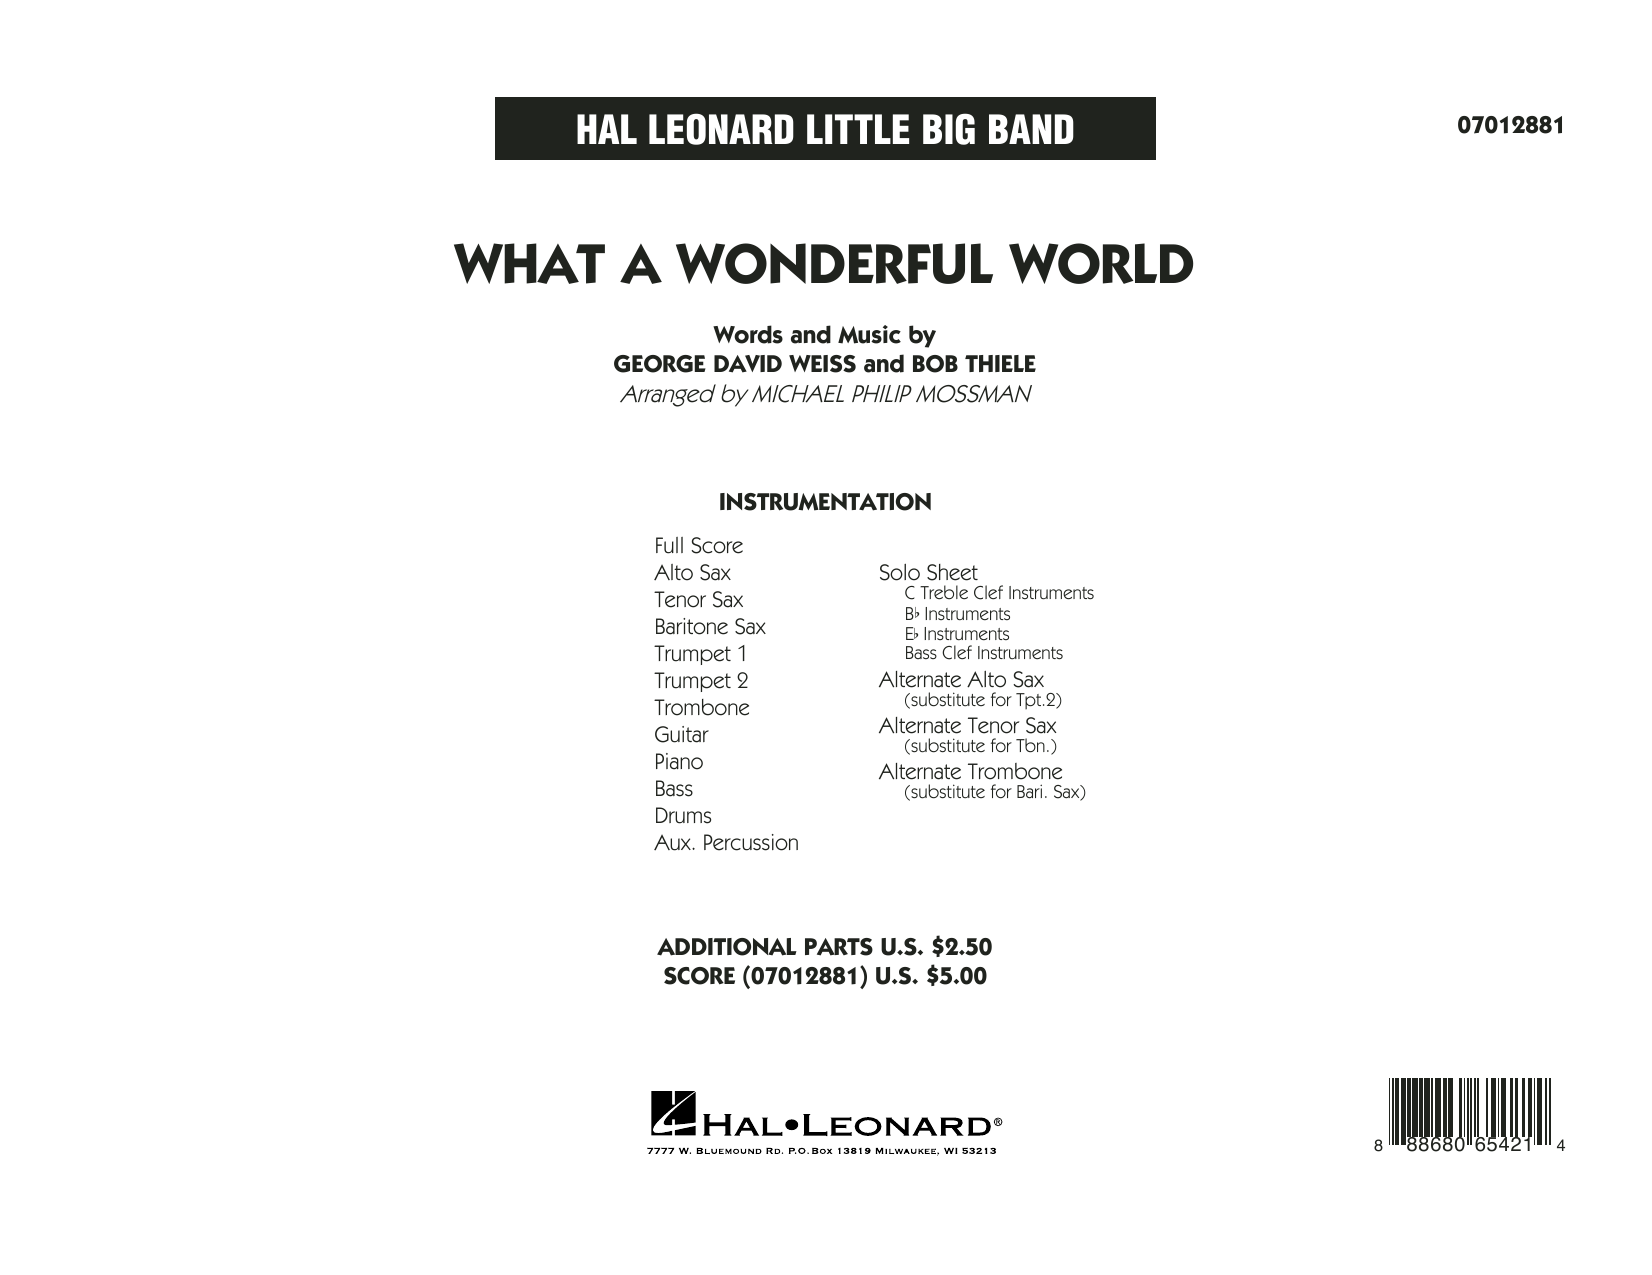 What A Wonderful World Dl - Full Score Sheet Music